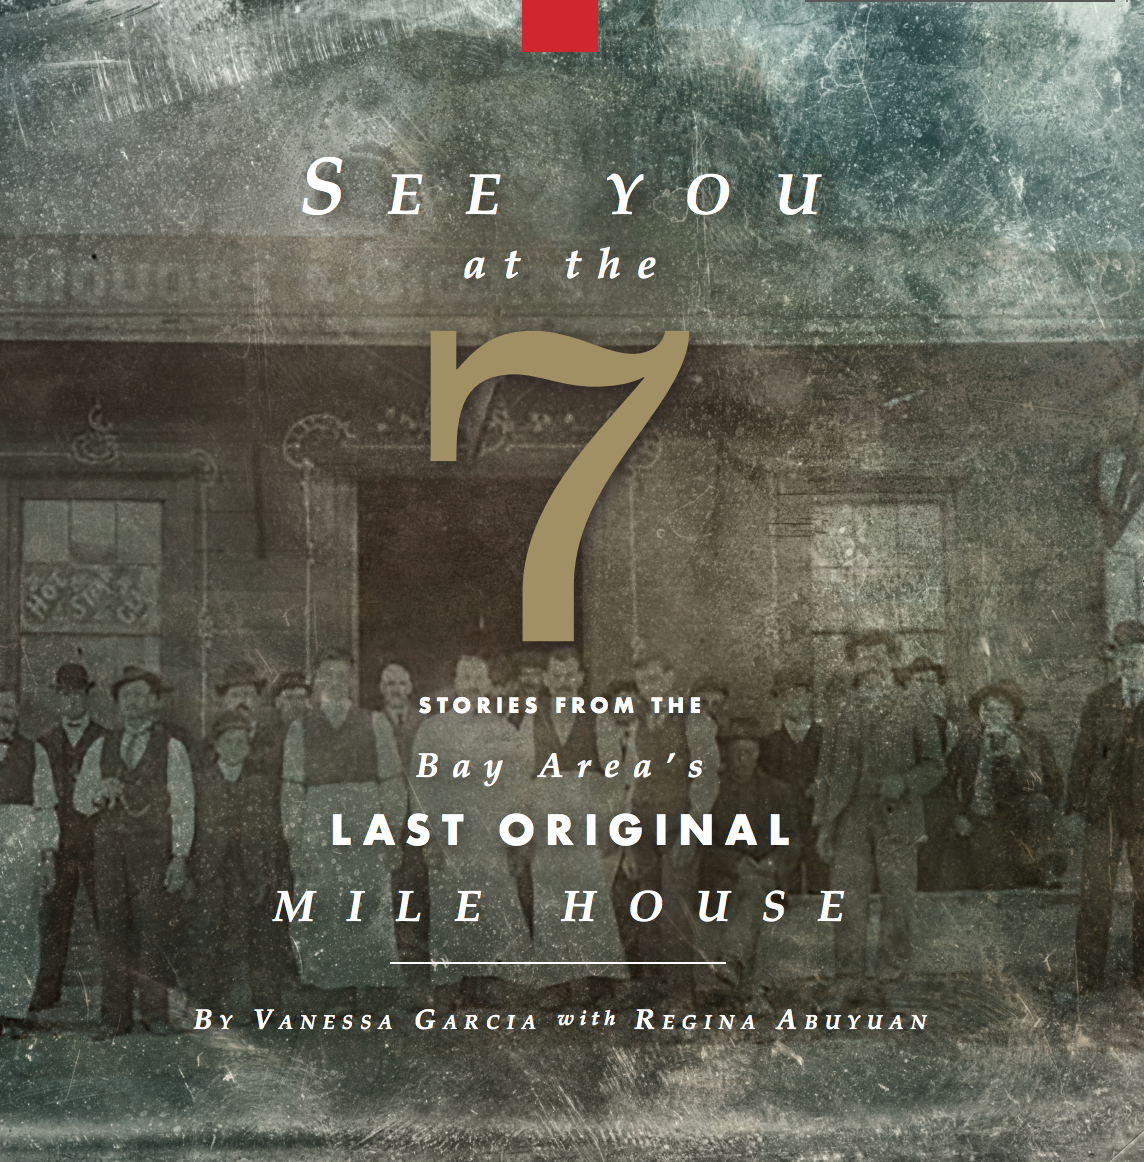 Local Favorite 7 MILE HOUSE Celebrates 160 Year Anniversary With Vanessa Garcia's New Book 'See You At The 7 – Stories From the Bay Area's Last Original Mile House'